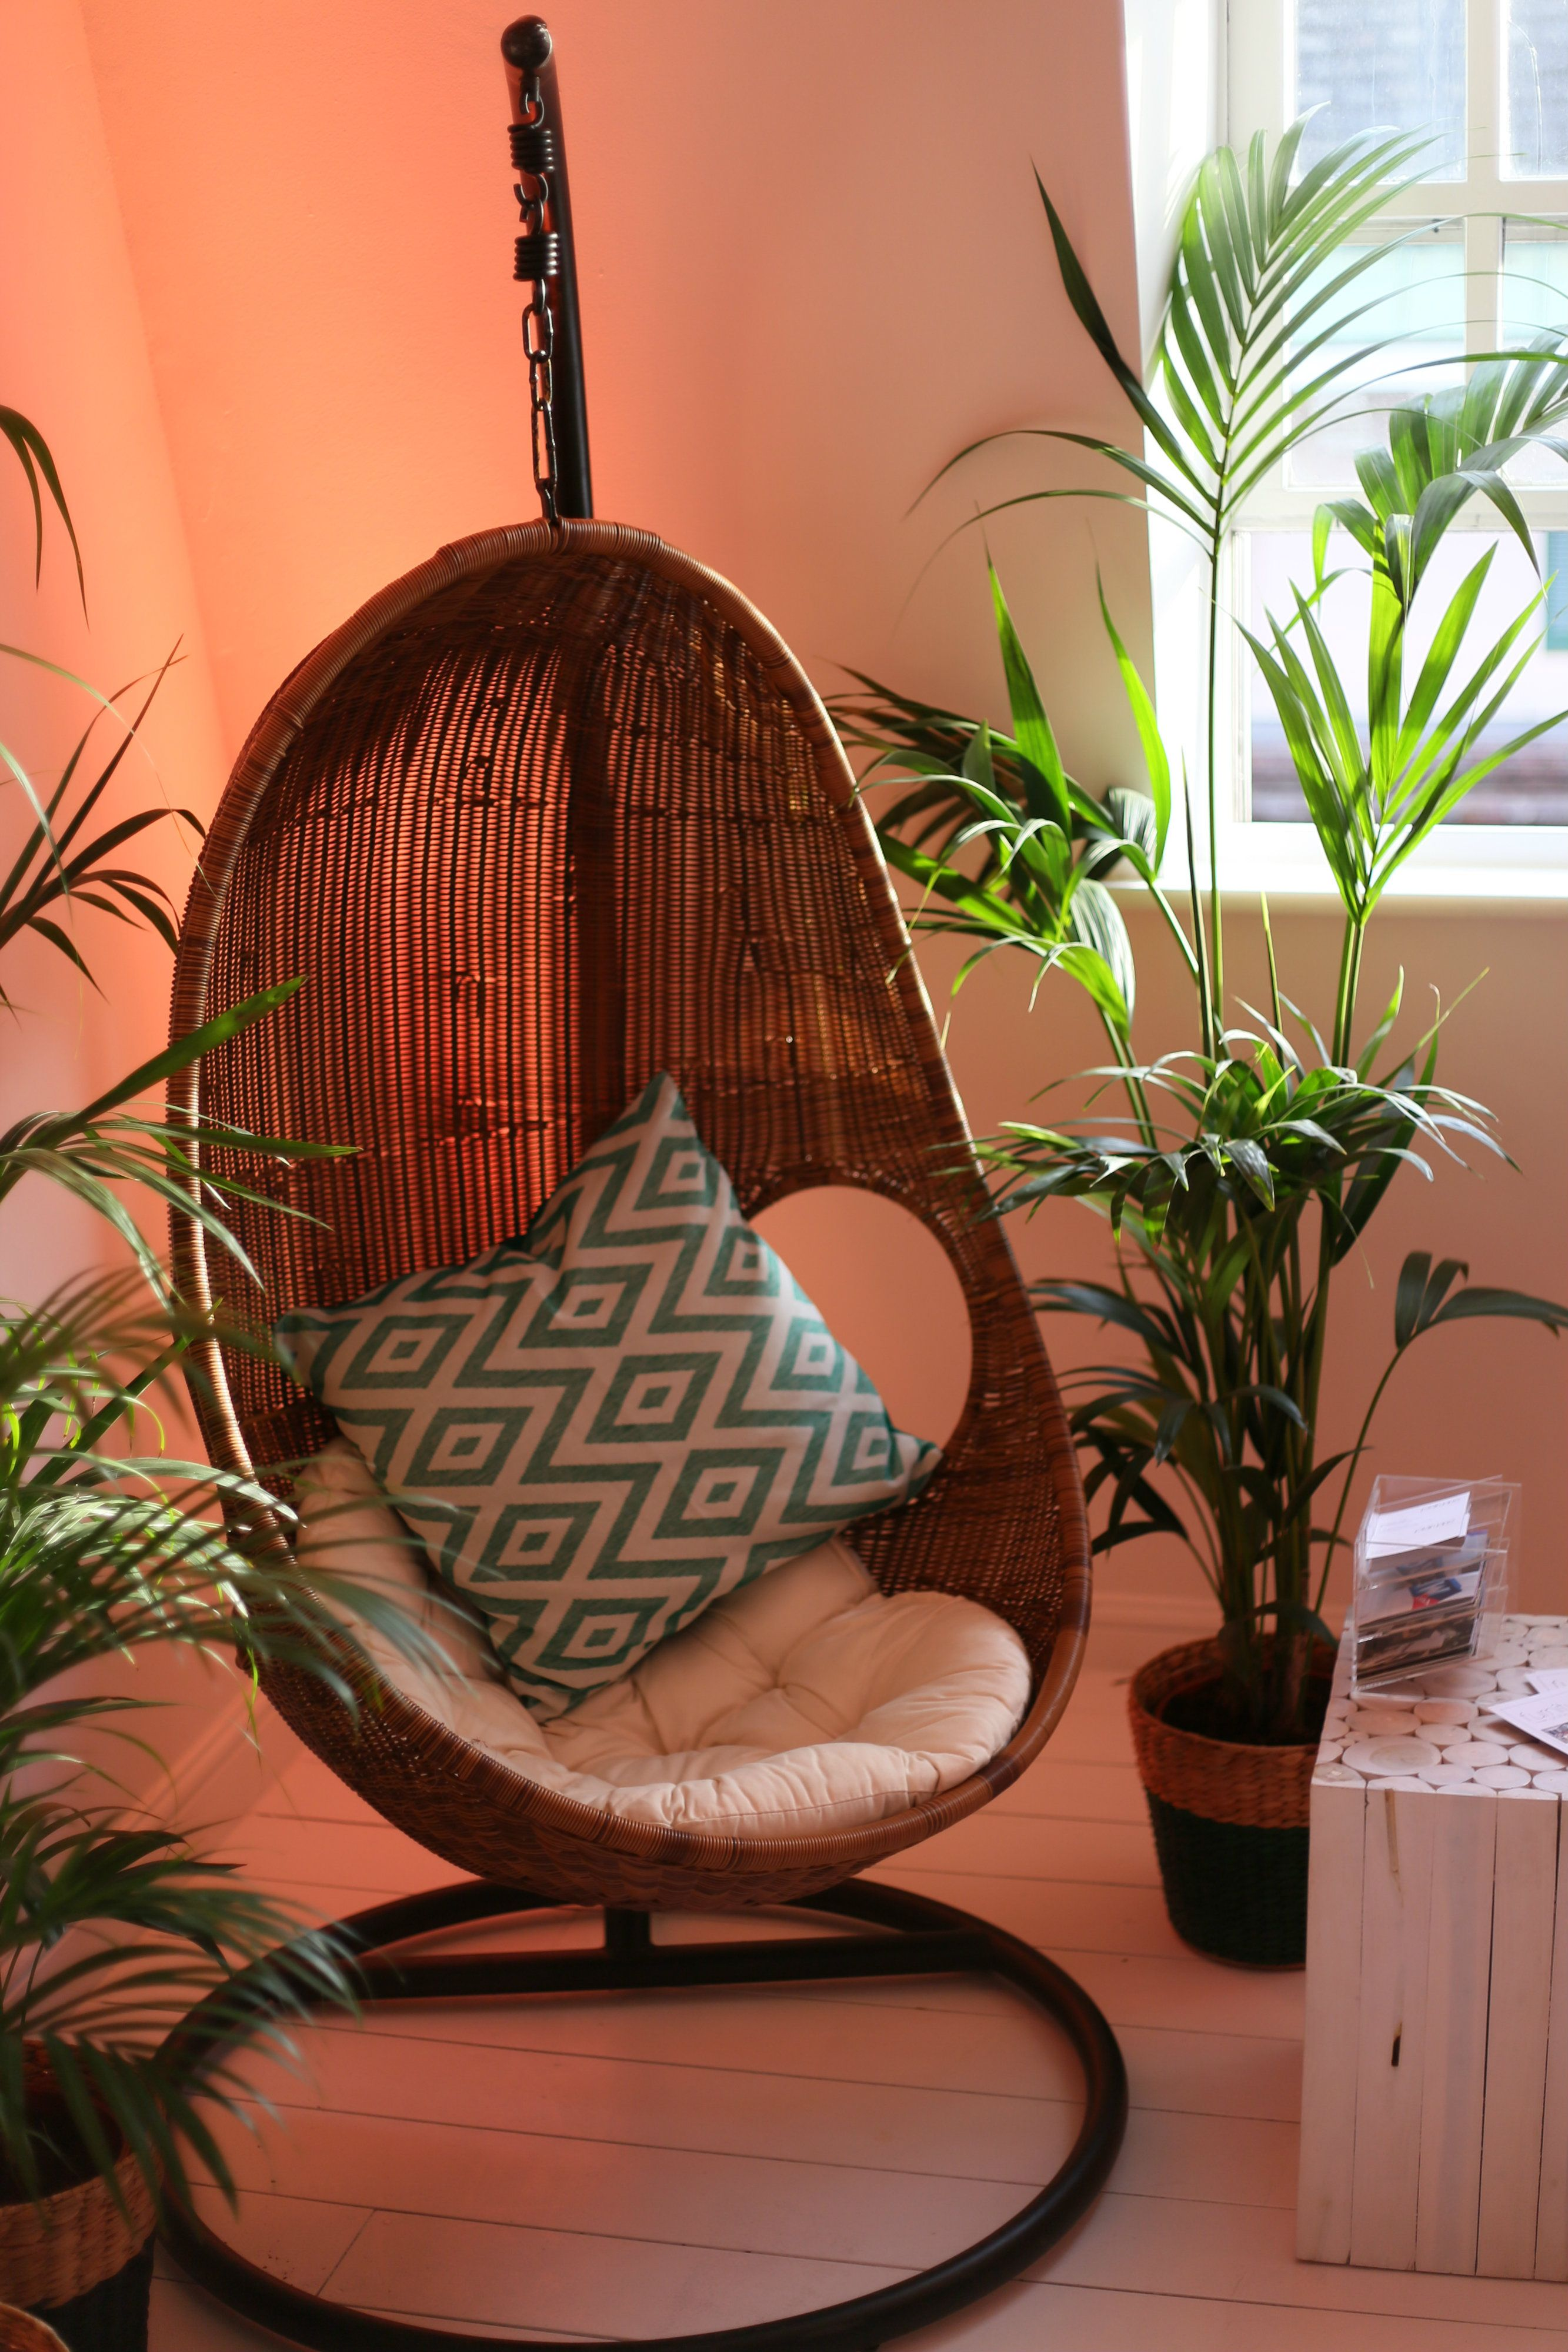 Our amazing hanging wicker chair brings a little bit of